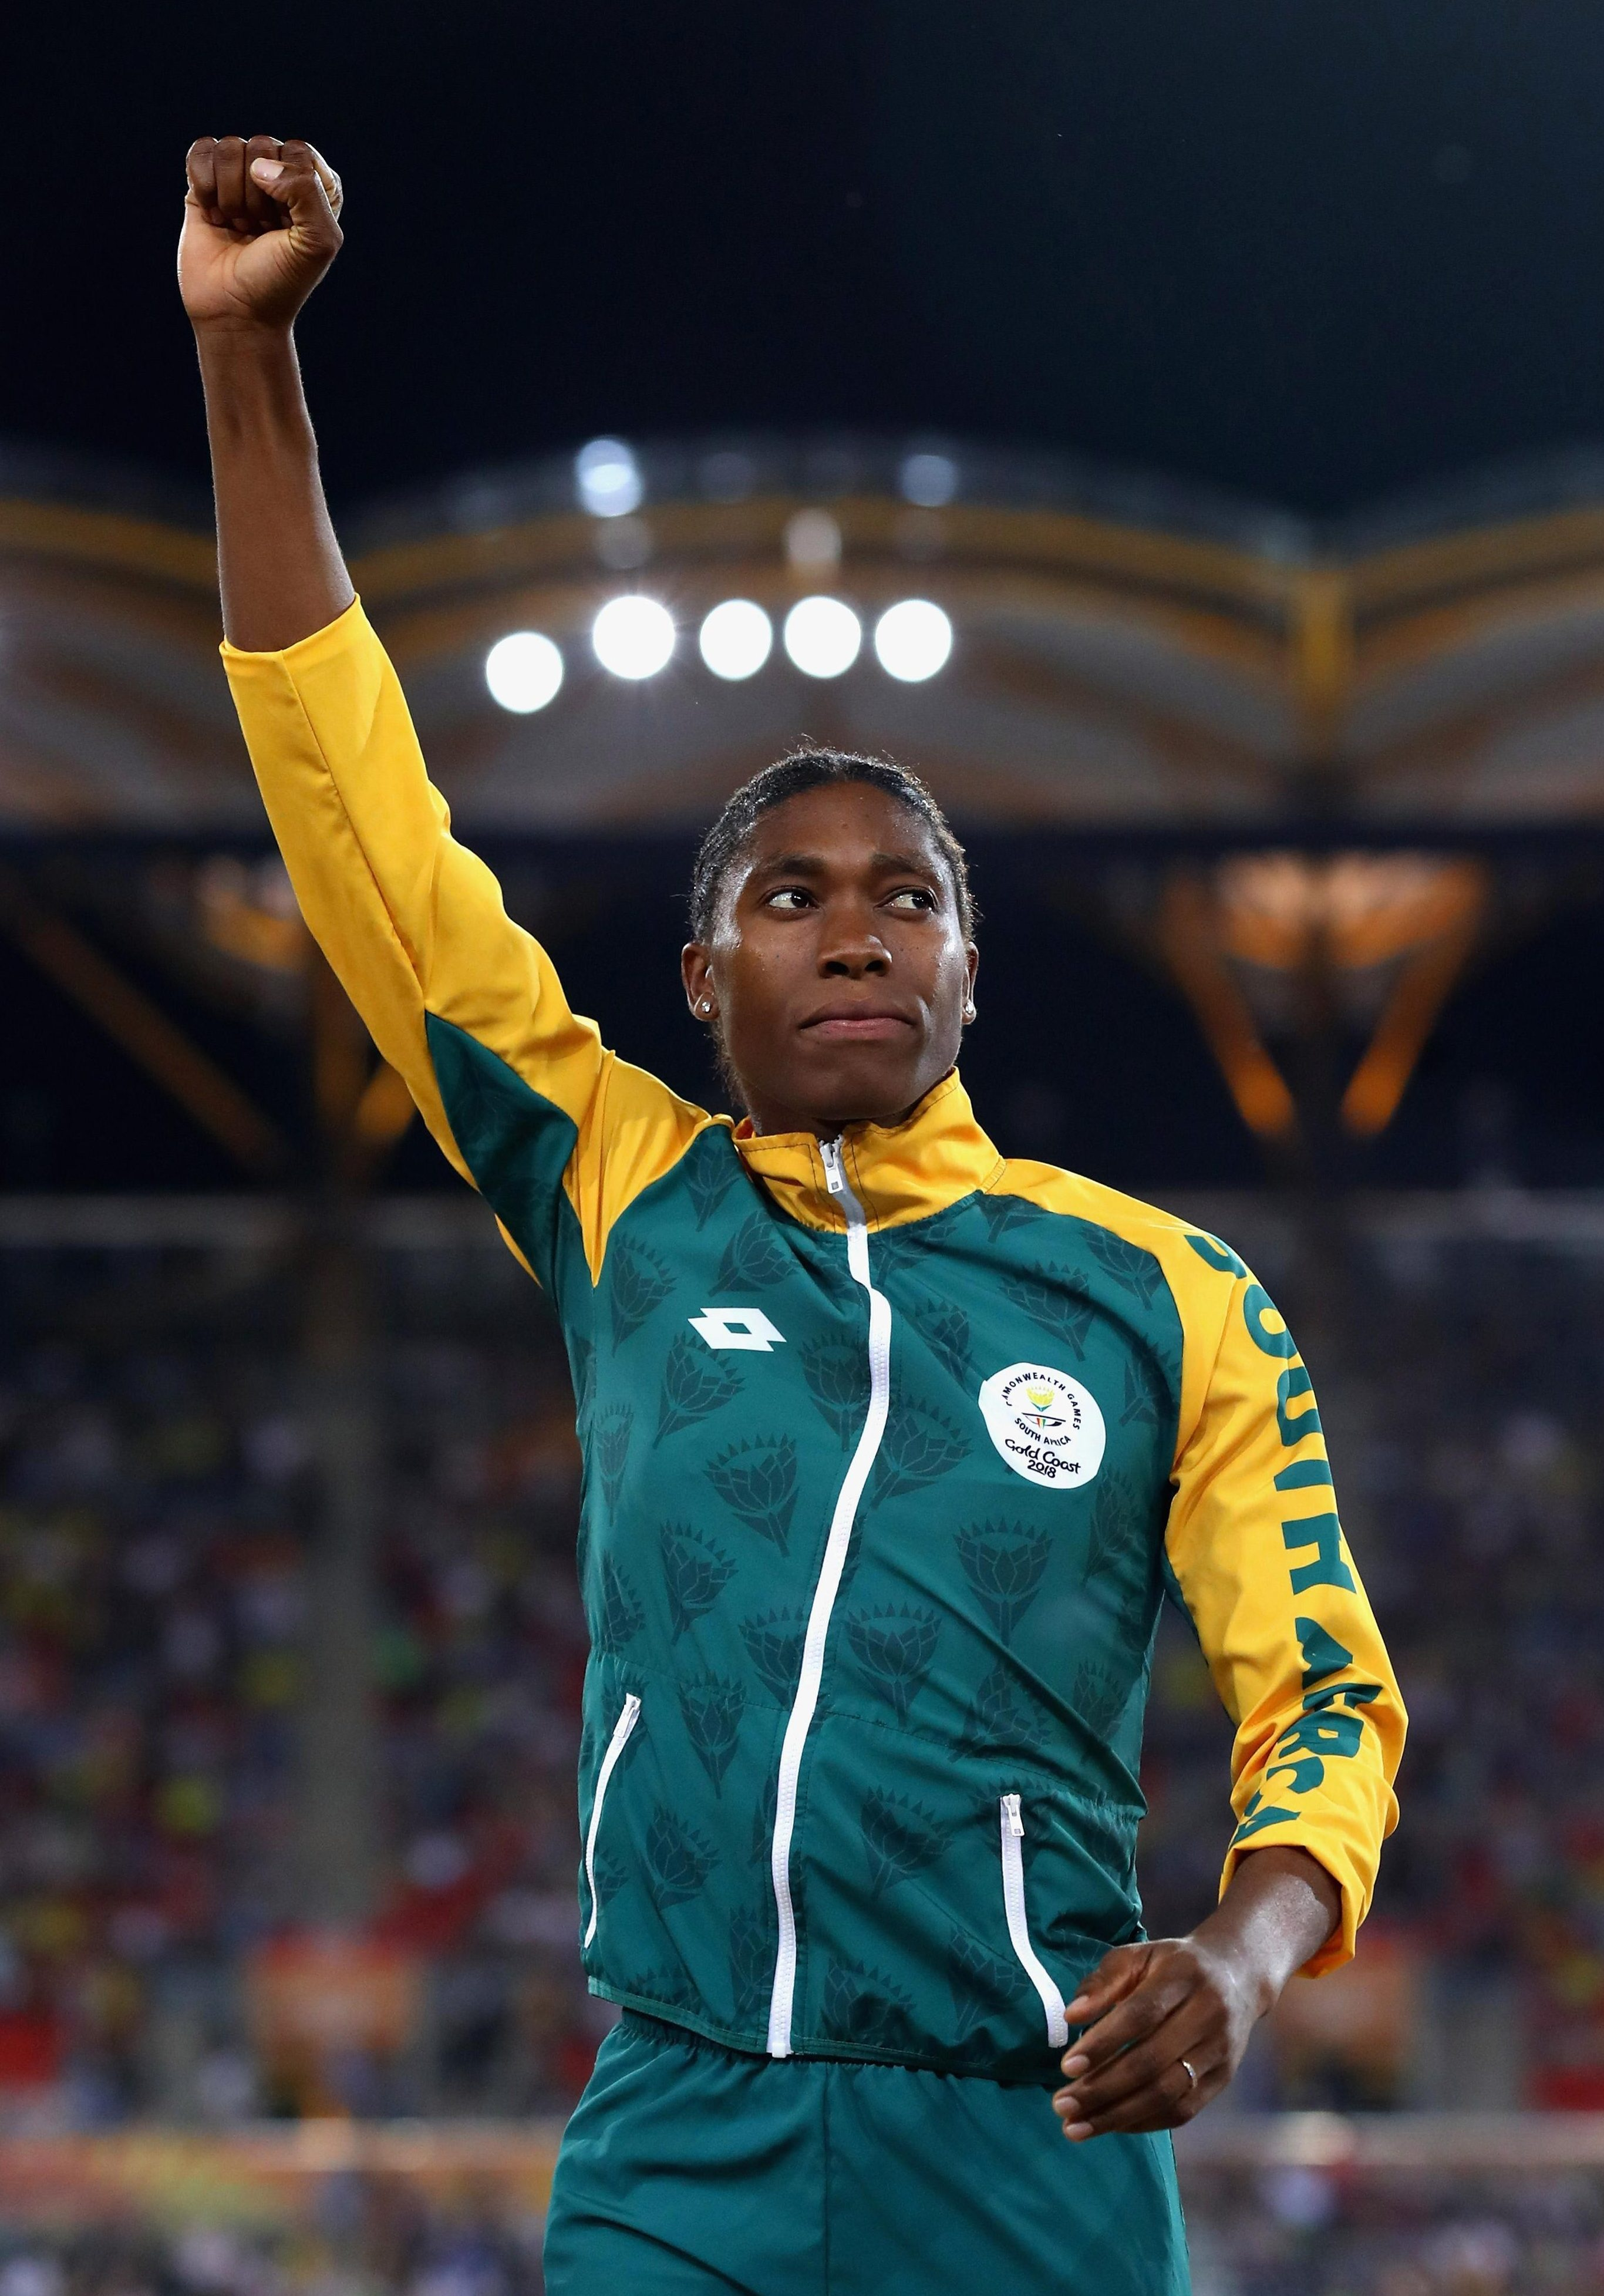 Semenya reacts after winning South Africa's 13th gold medal at the Commonwealth Games